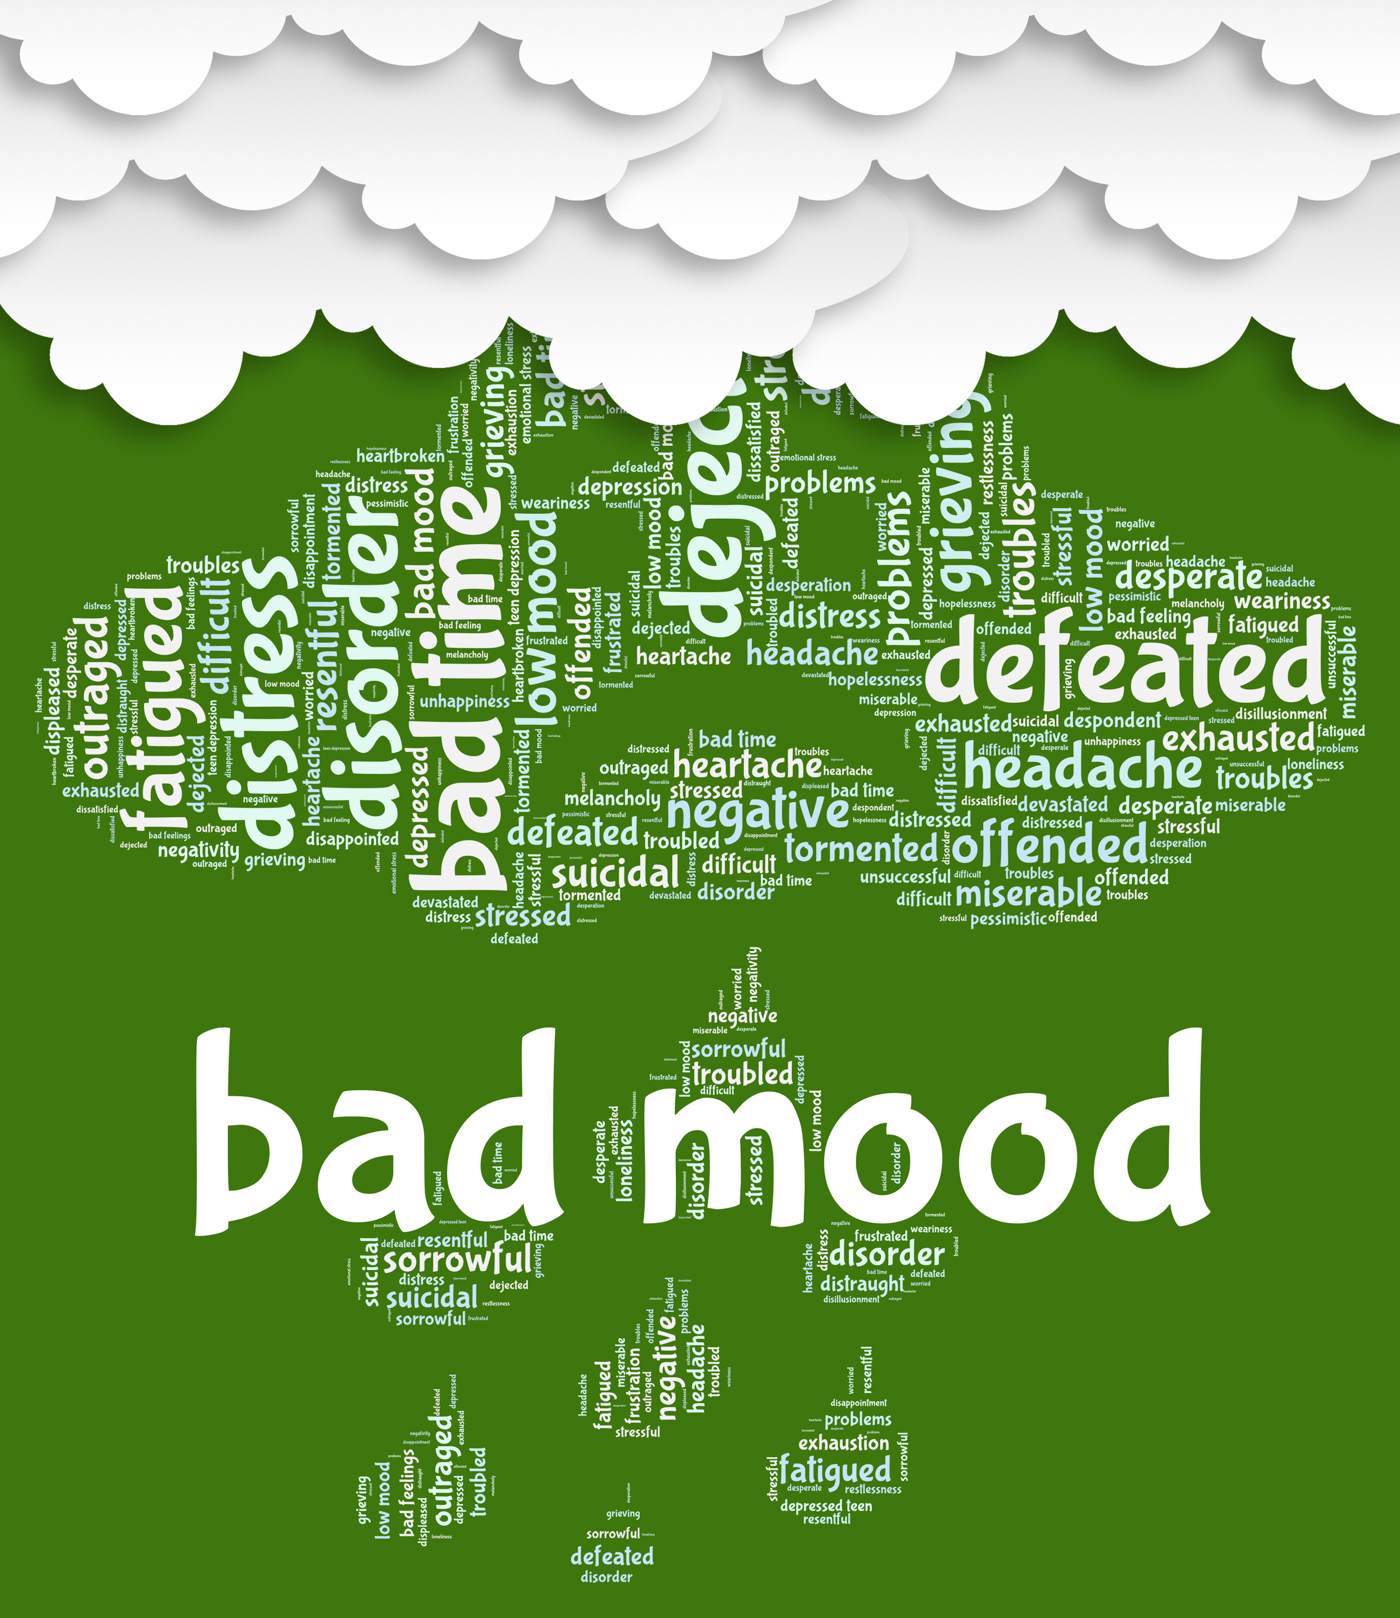 Bad mood represents grief stricken and anger photo